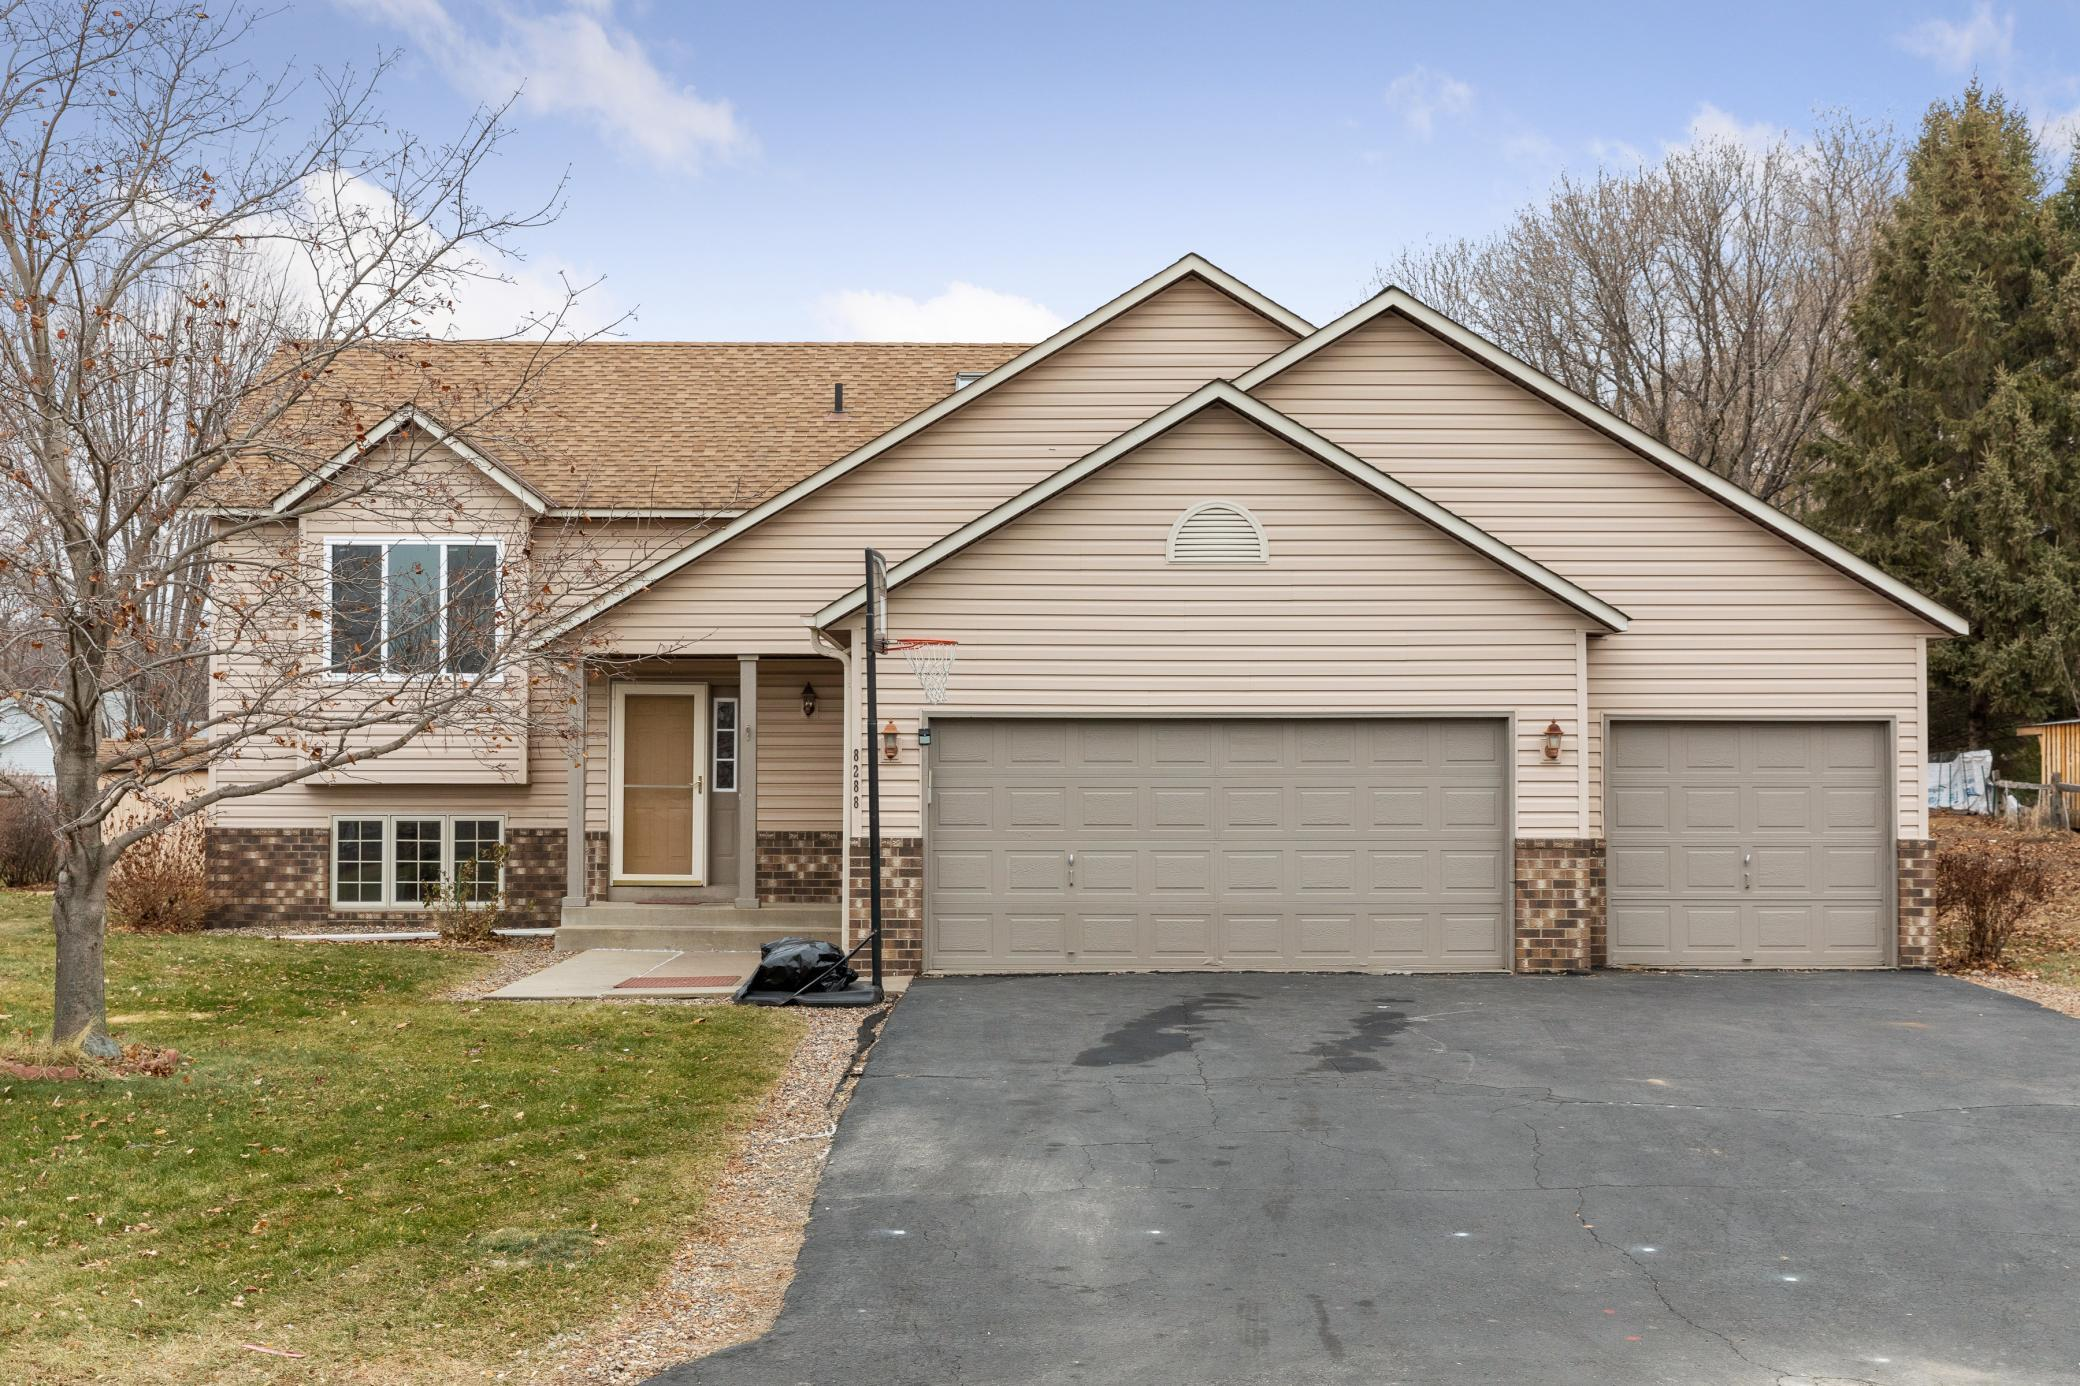 8288 Dawson Way Property Photo - Inver Grove Heights, MN real estate listing